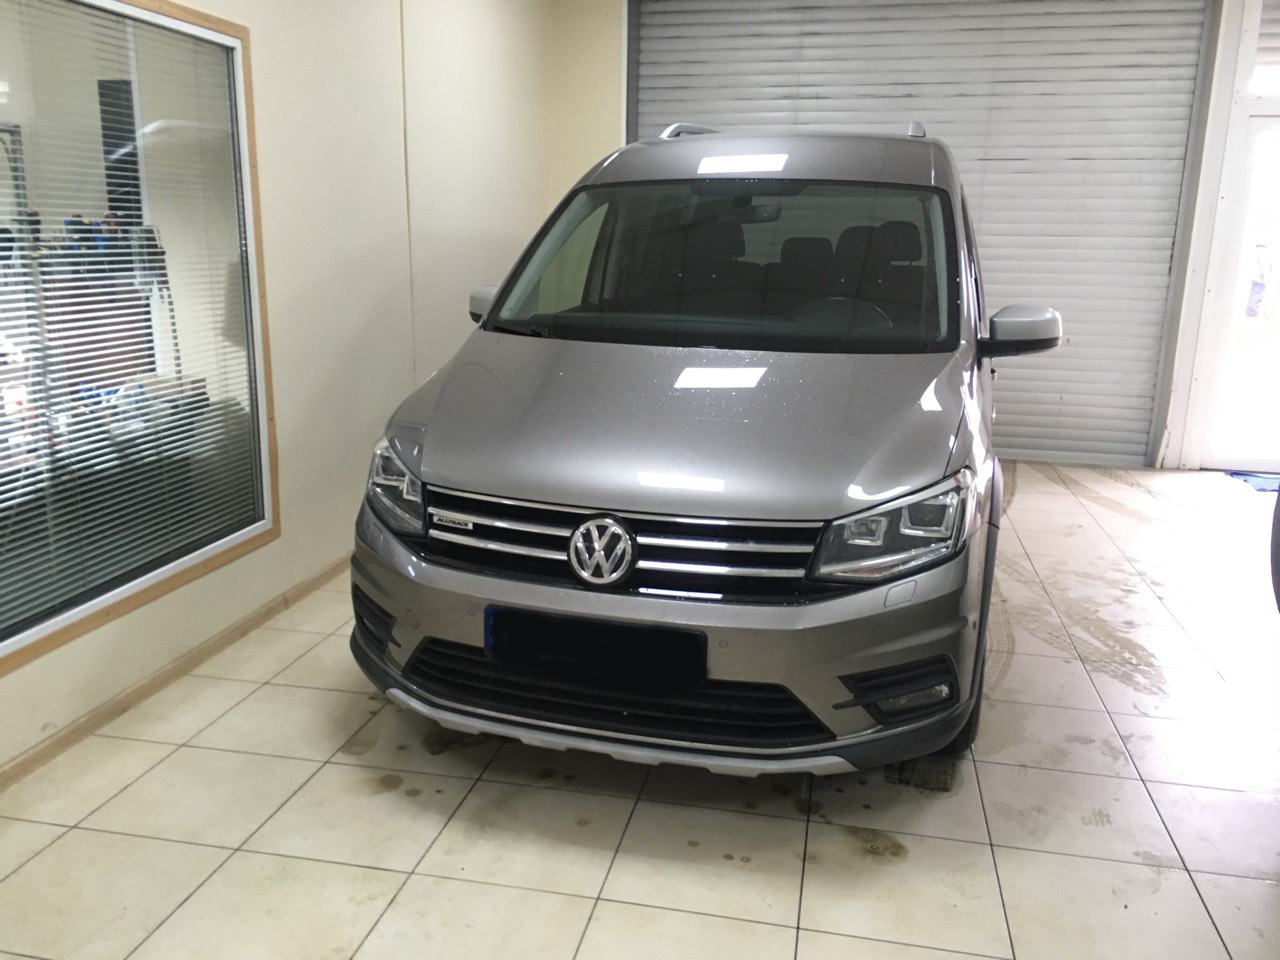 VW Caddy IV 2.0 TDI 2016